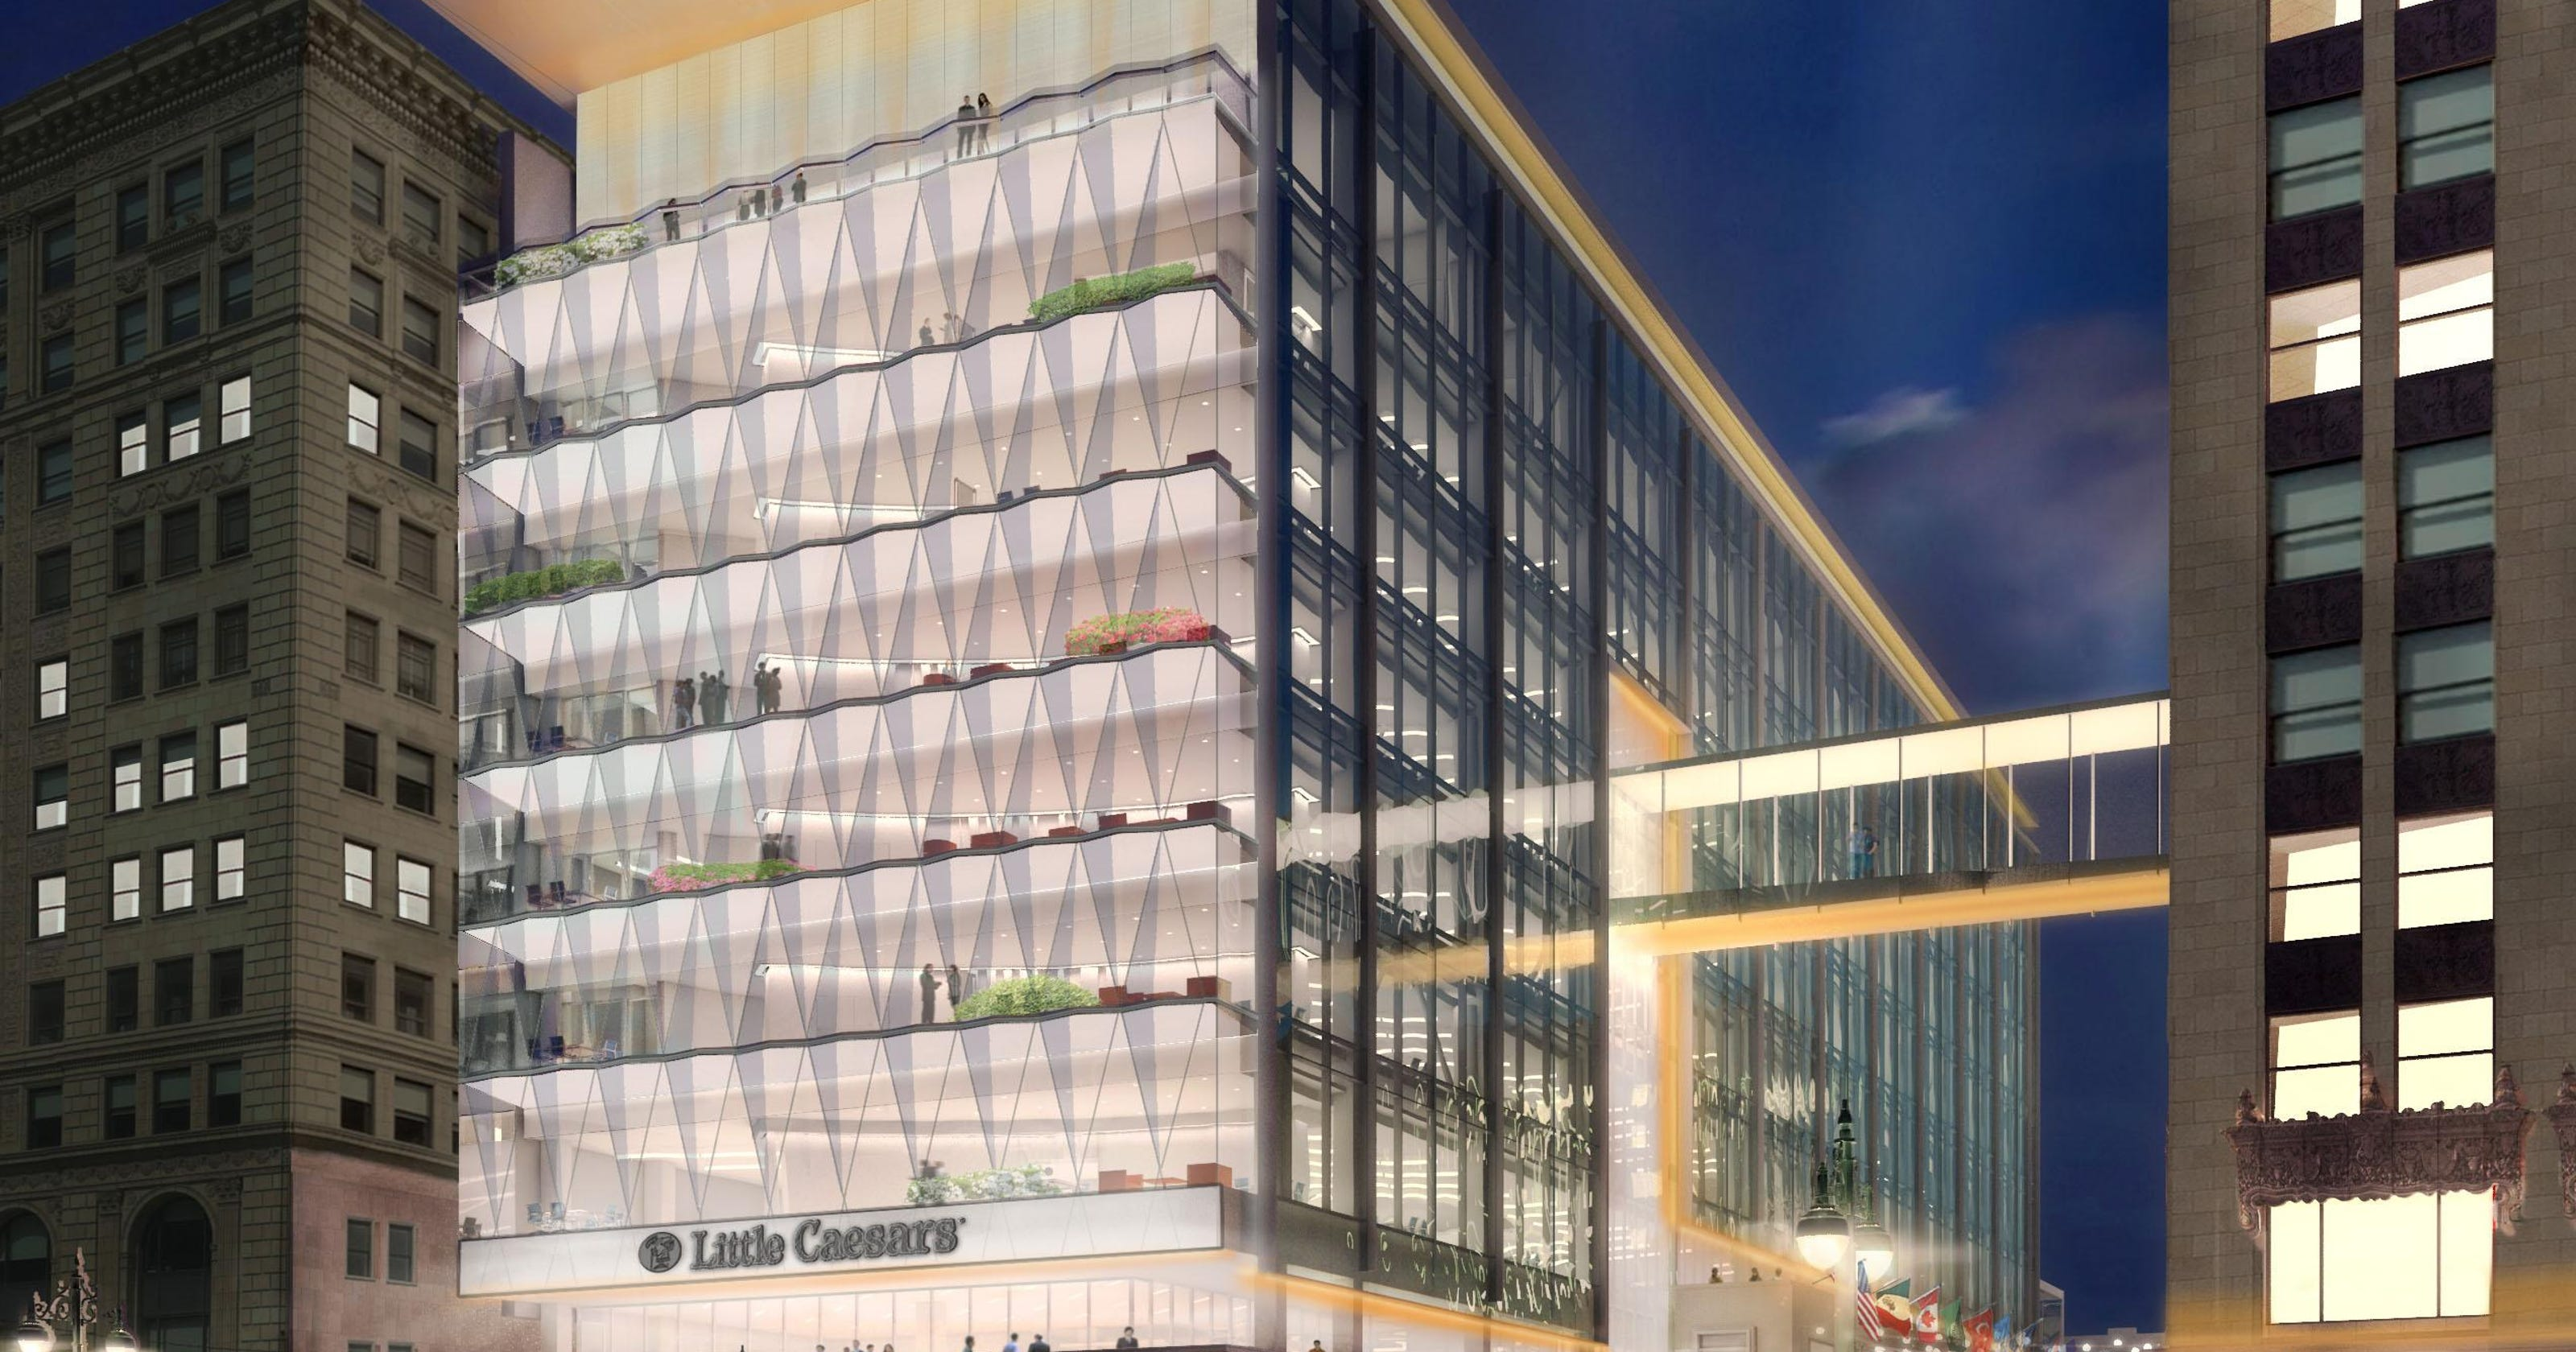 403417d2d6c New Little Caesars headquarters will have windows shaped like pizza slices